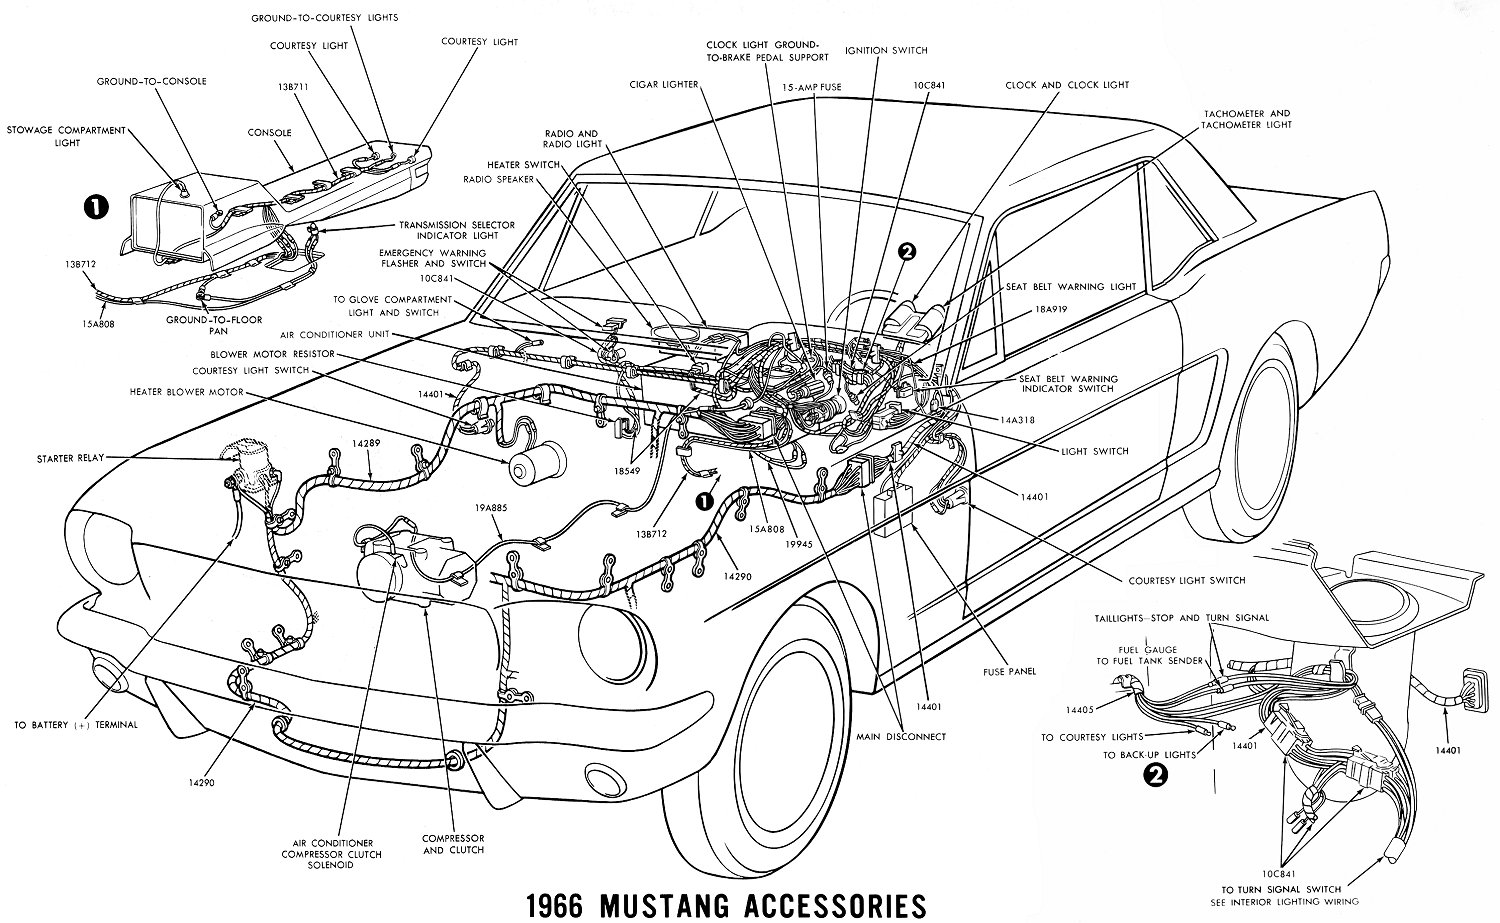 1965 mustang wiring diagram pdf 1966 mustang wiring diagrams - average joe restoration 1966 mustang wiring diagram pdf #14